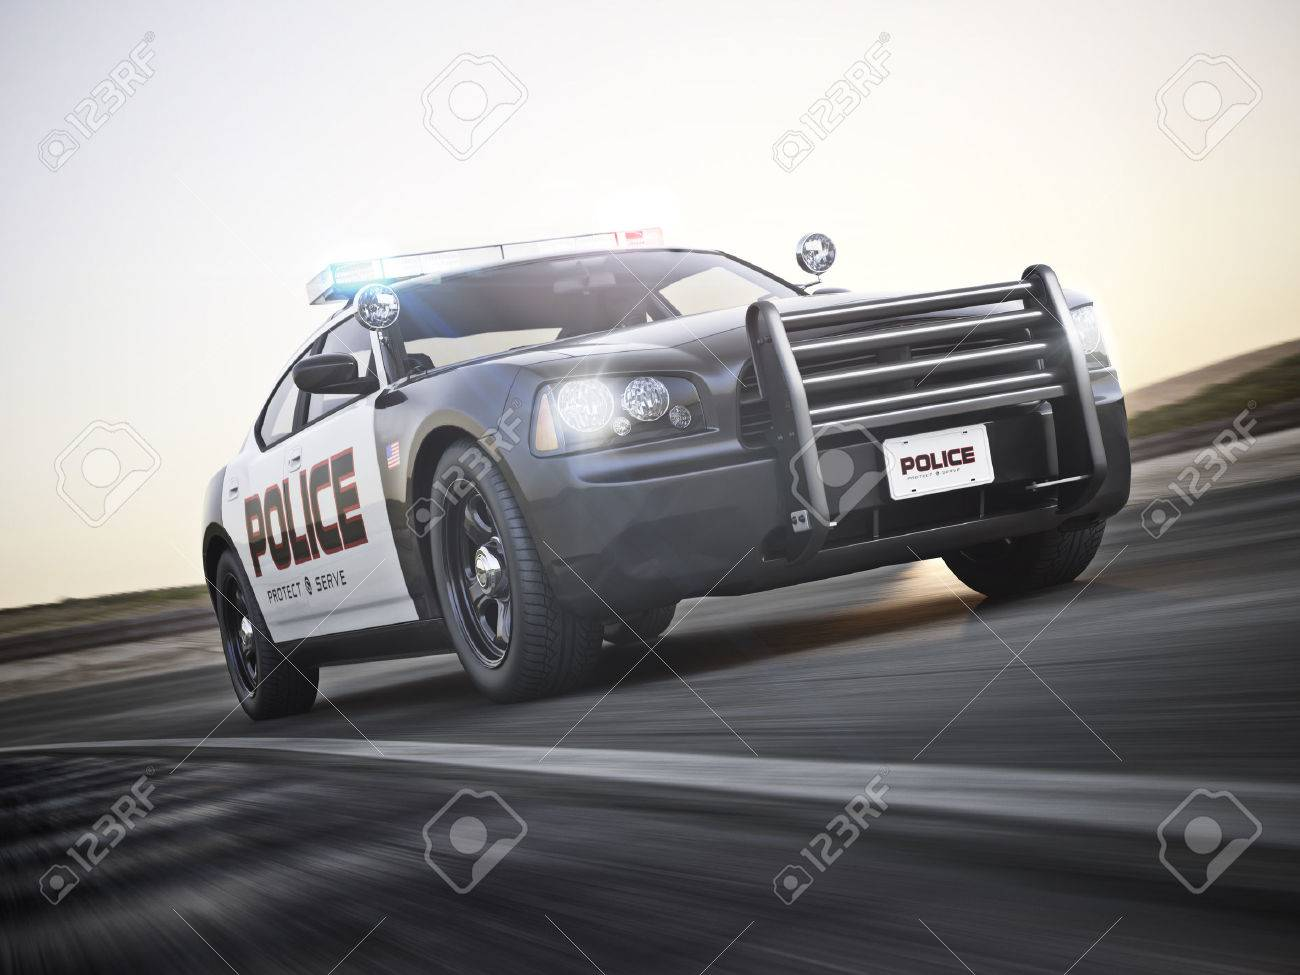 Police Car Running With Lights And Sirens On A Street With Motion